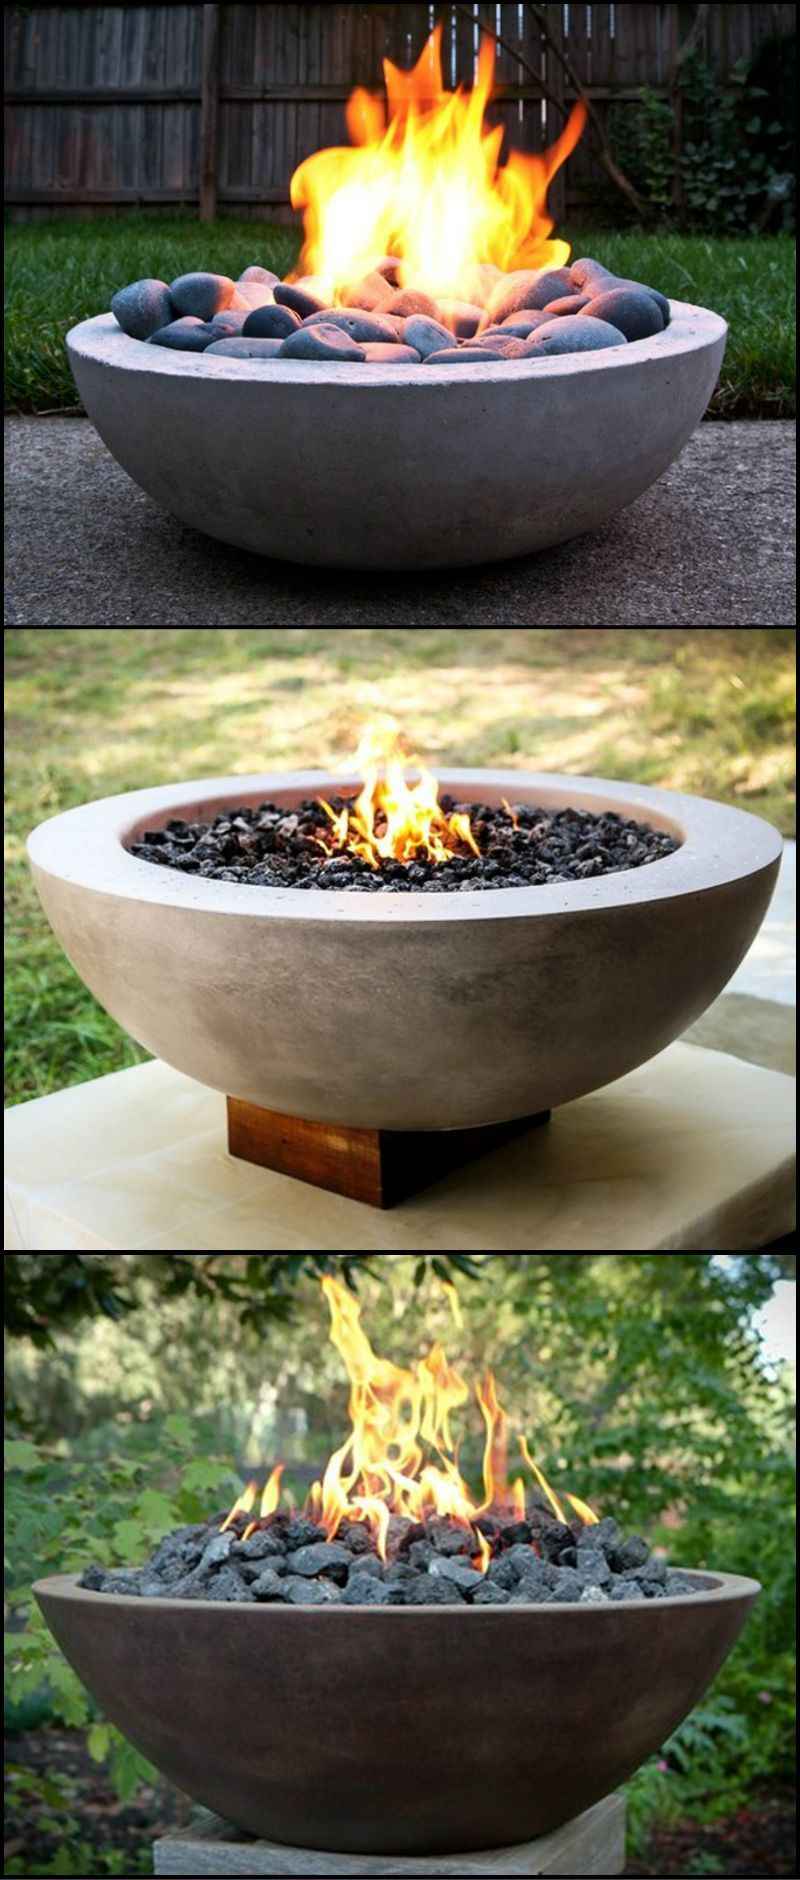 27 Easy Diy Bbq Fire Pit Ideas Anyone Can Make In 2019